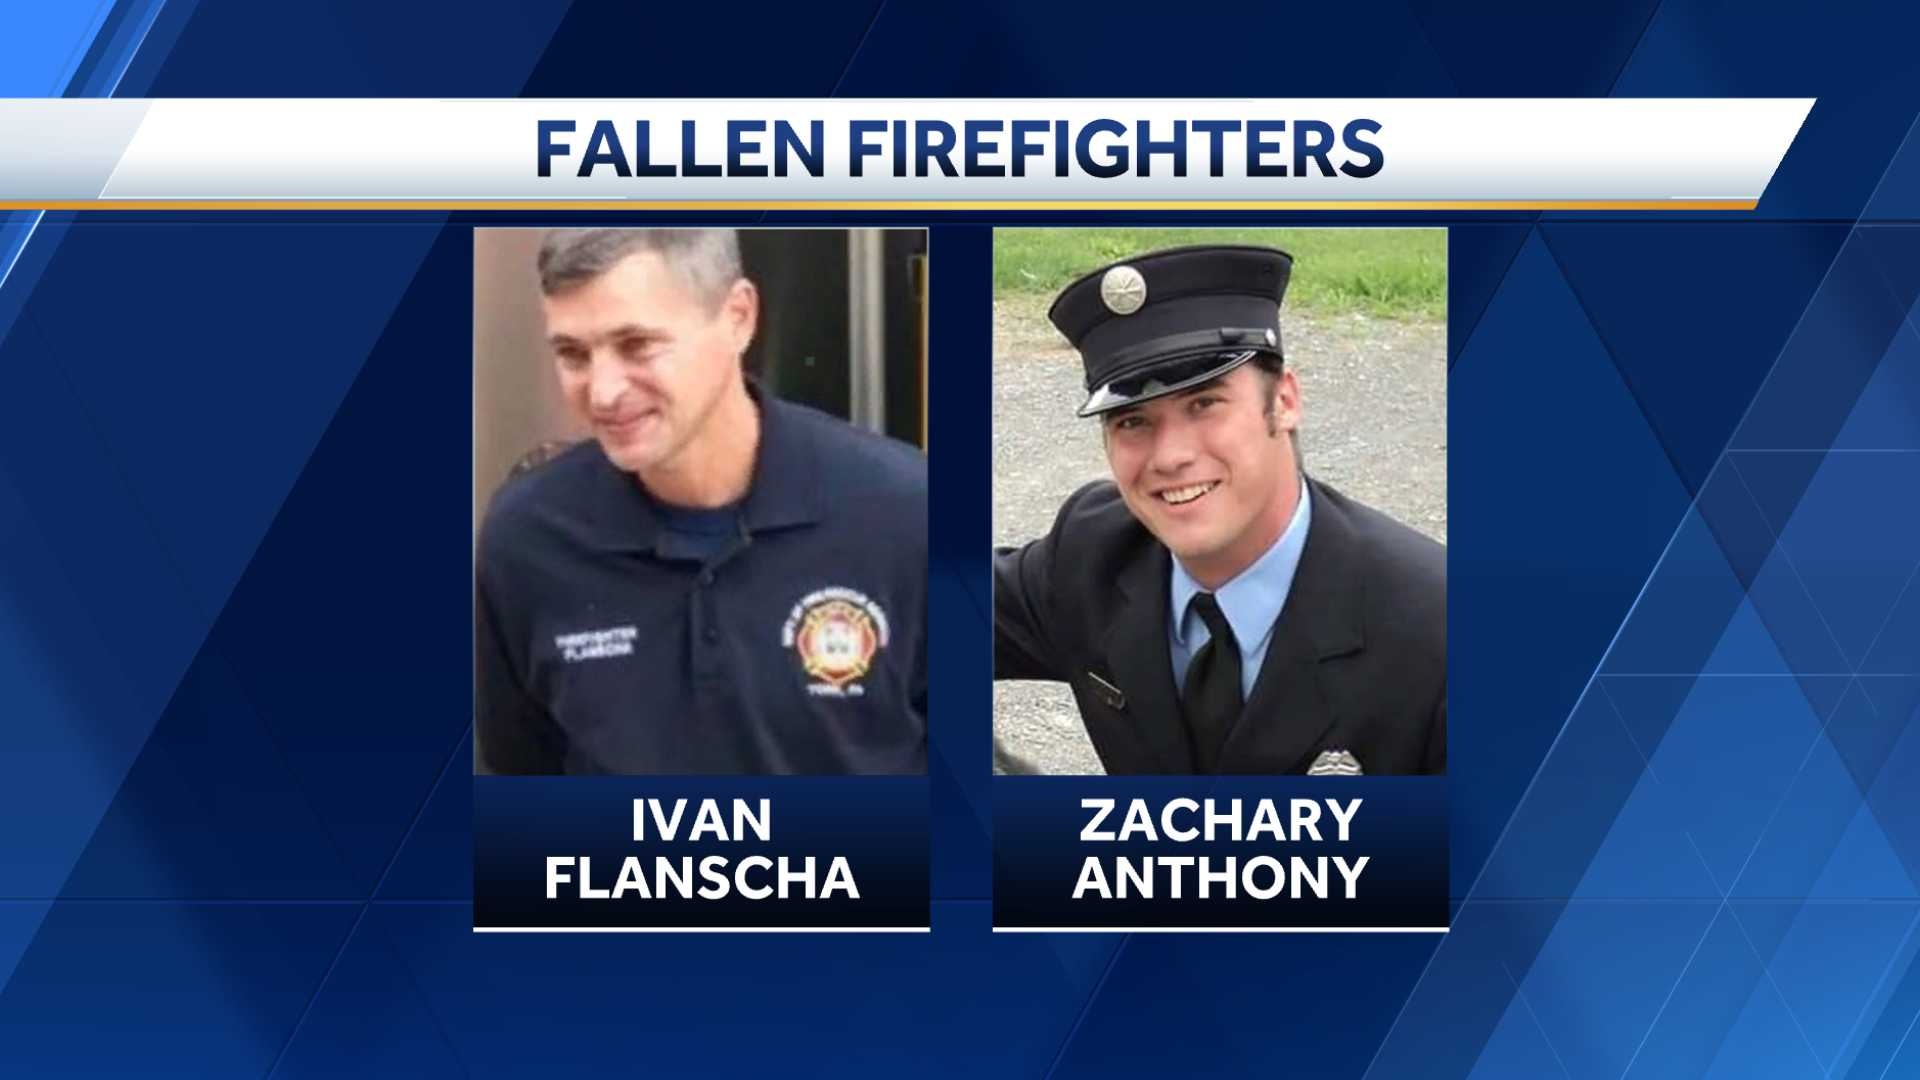 York firefighters killed, Ivan Flanscha and Zach Anthony